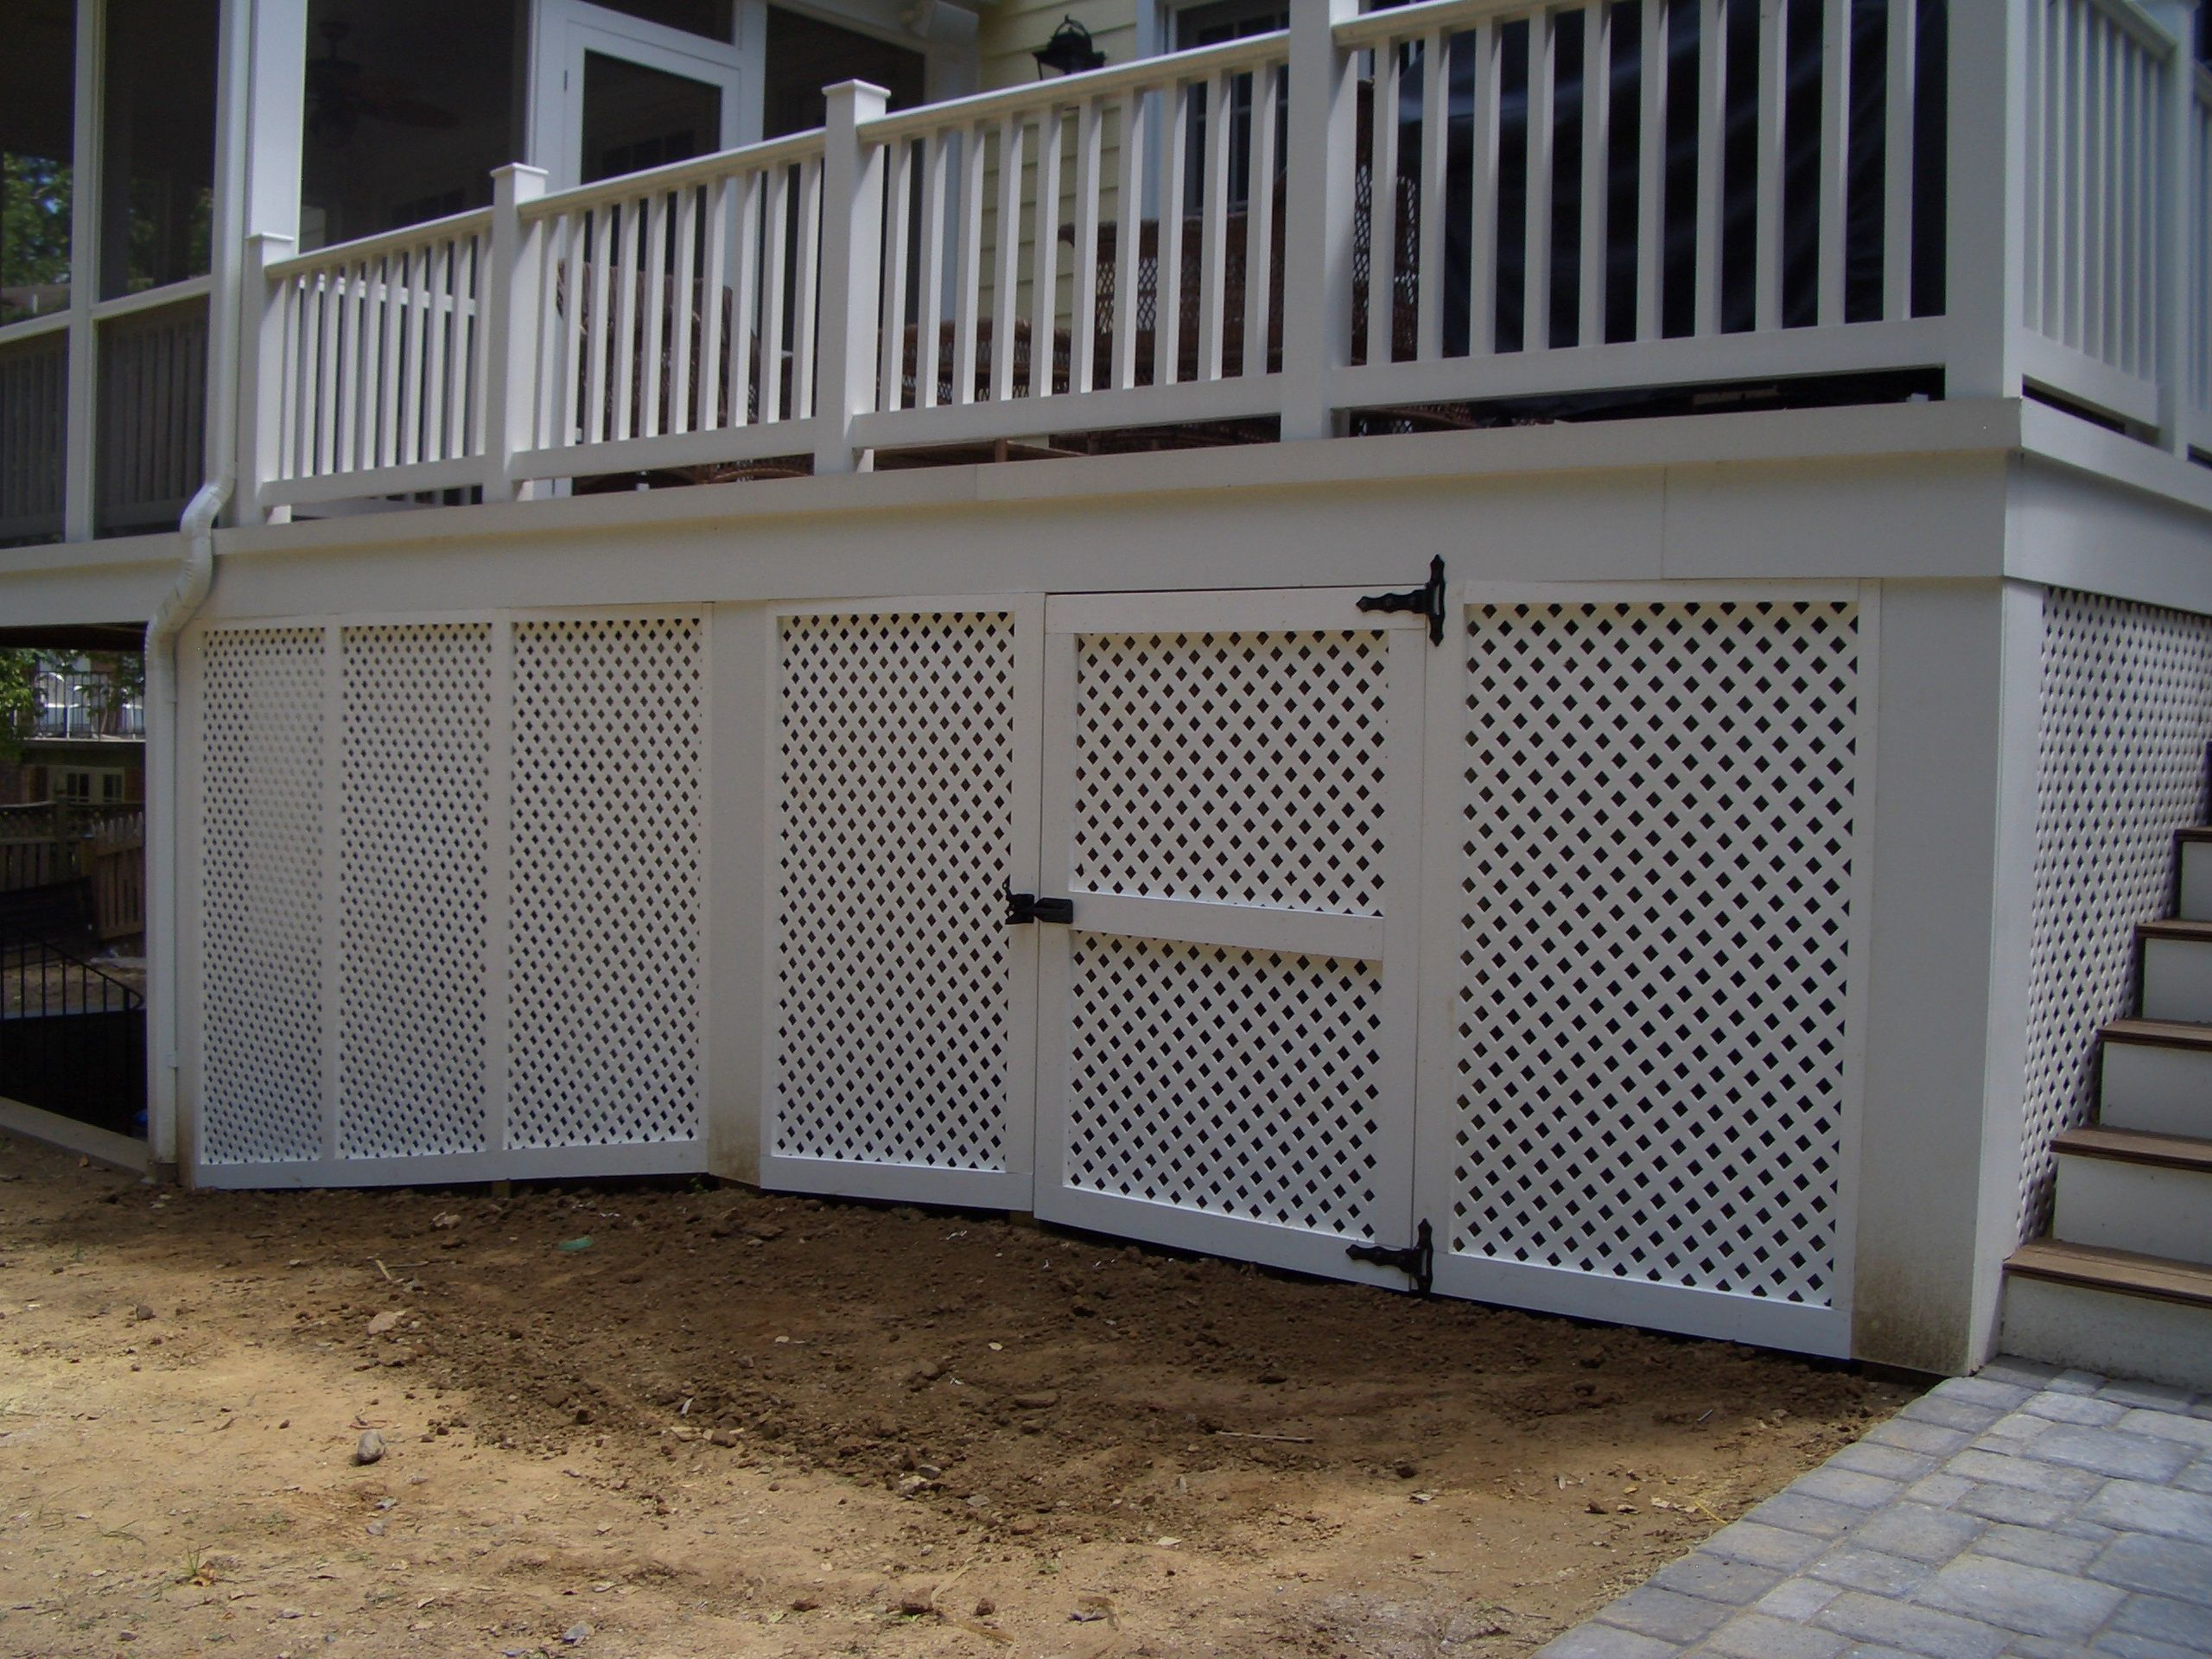 Vinyl privacy lattice screen under deck w gate outdoor for Lattice for privacy on patio